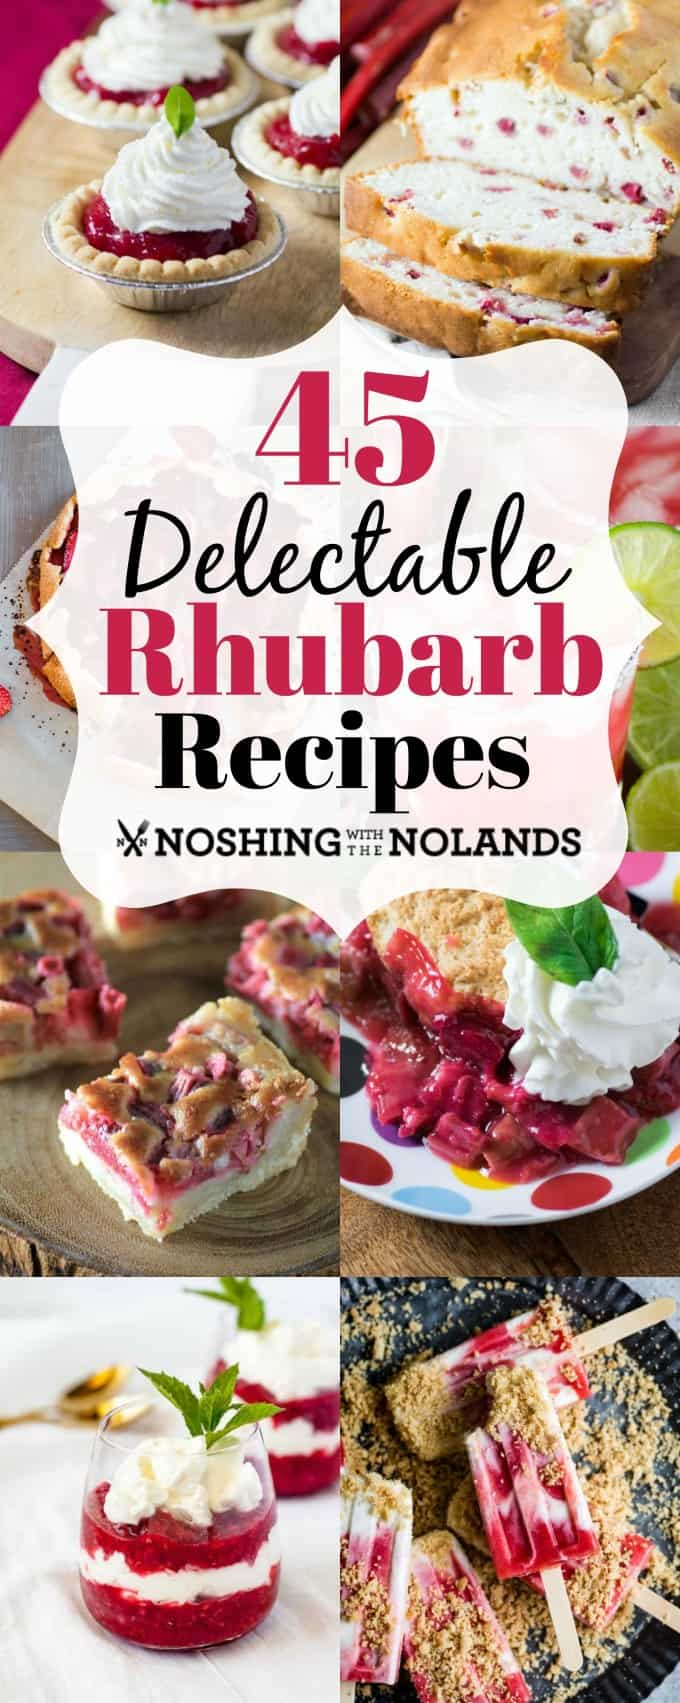 45 Delectable Rhubarb Recipes will offer you recipes to enjoy all year long!! #rhubarb #recipes #dessert